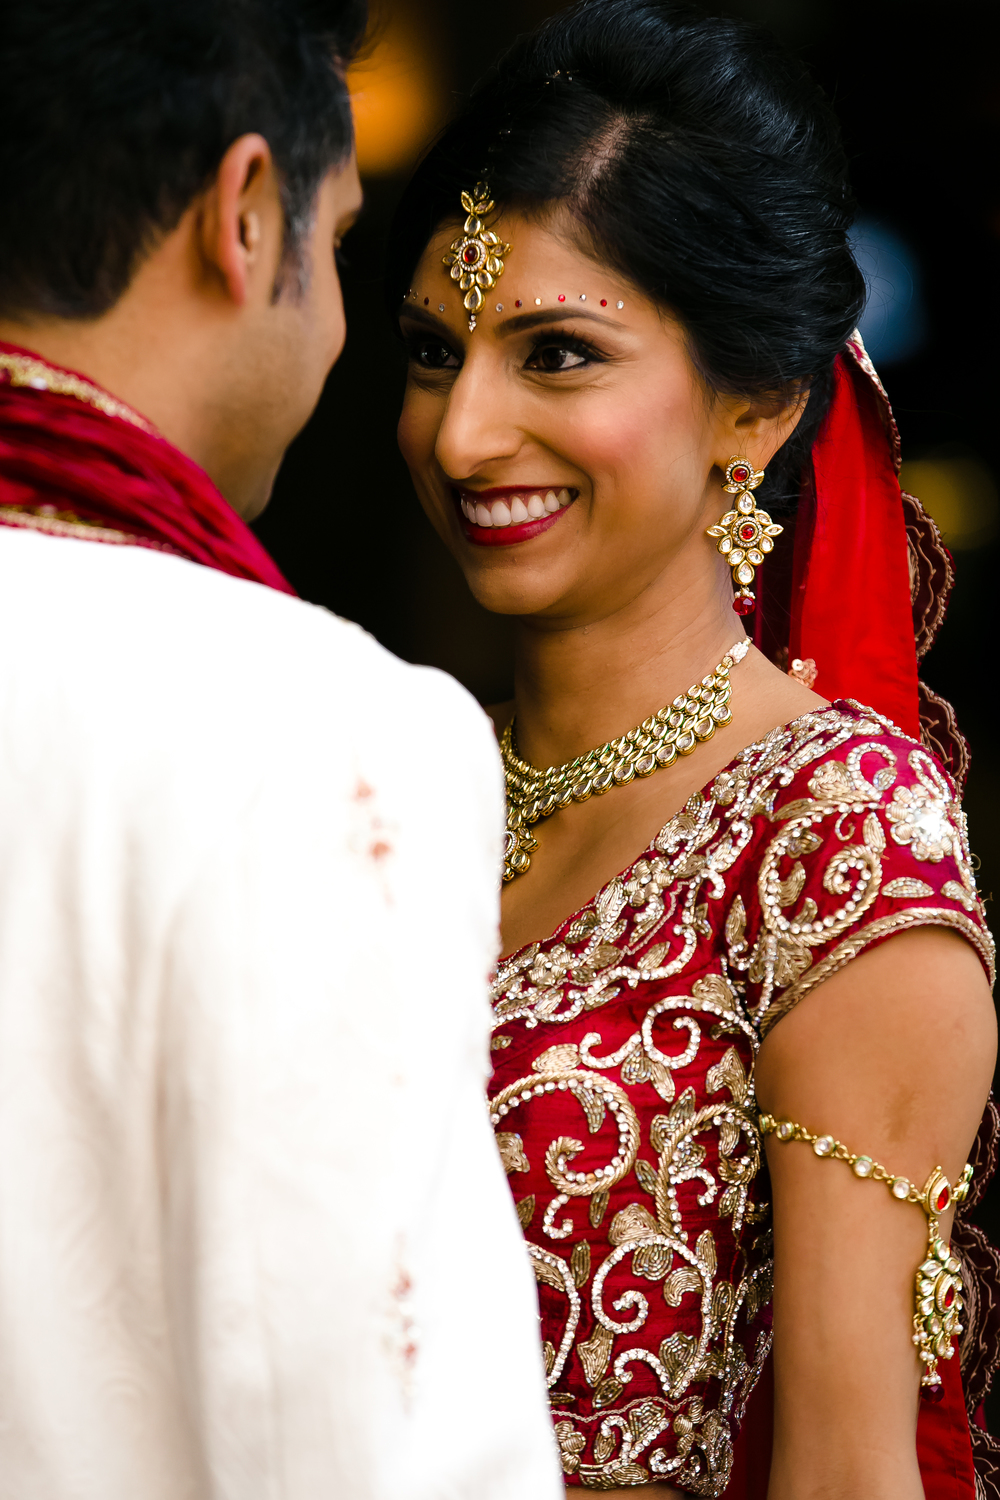 SOUTHEAST-ASIAN-INDIAN-WEDDING_012.jpg